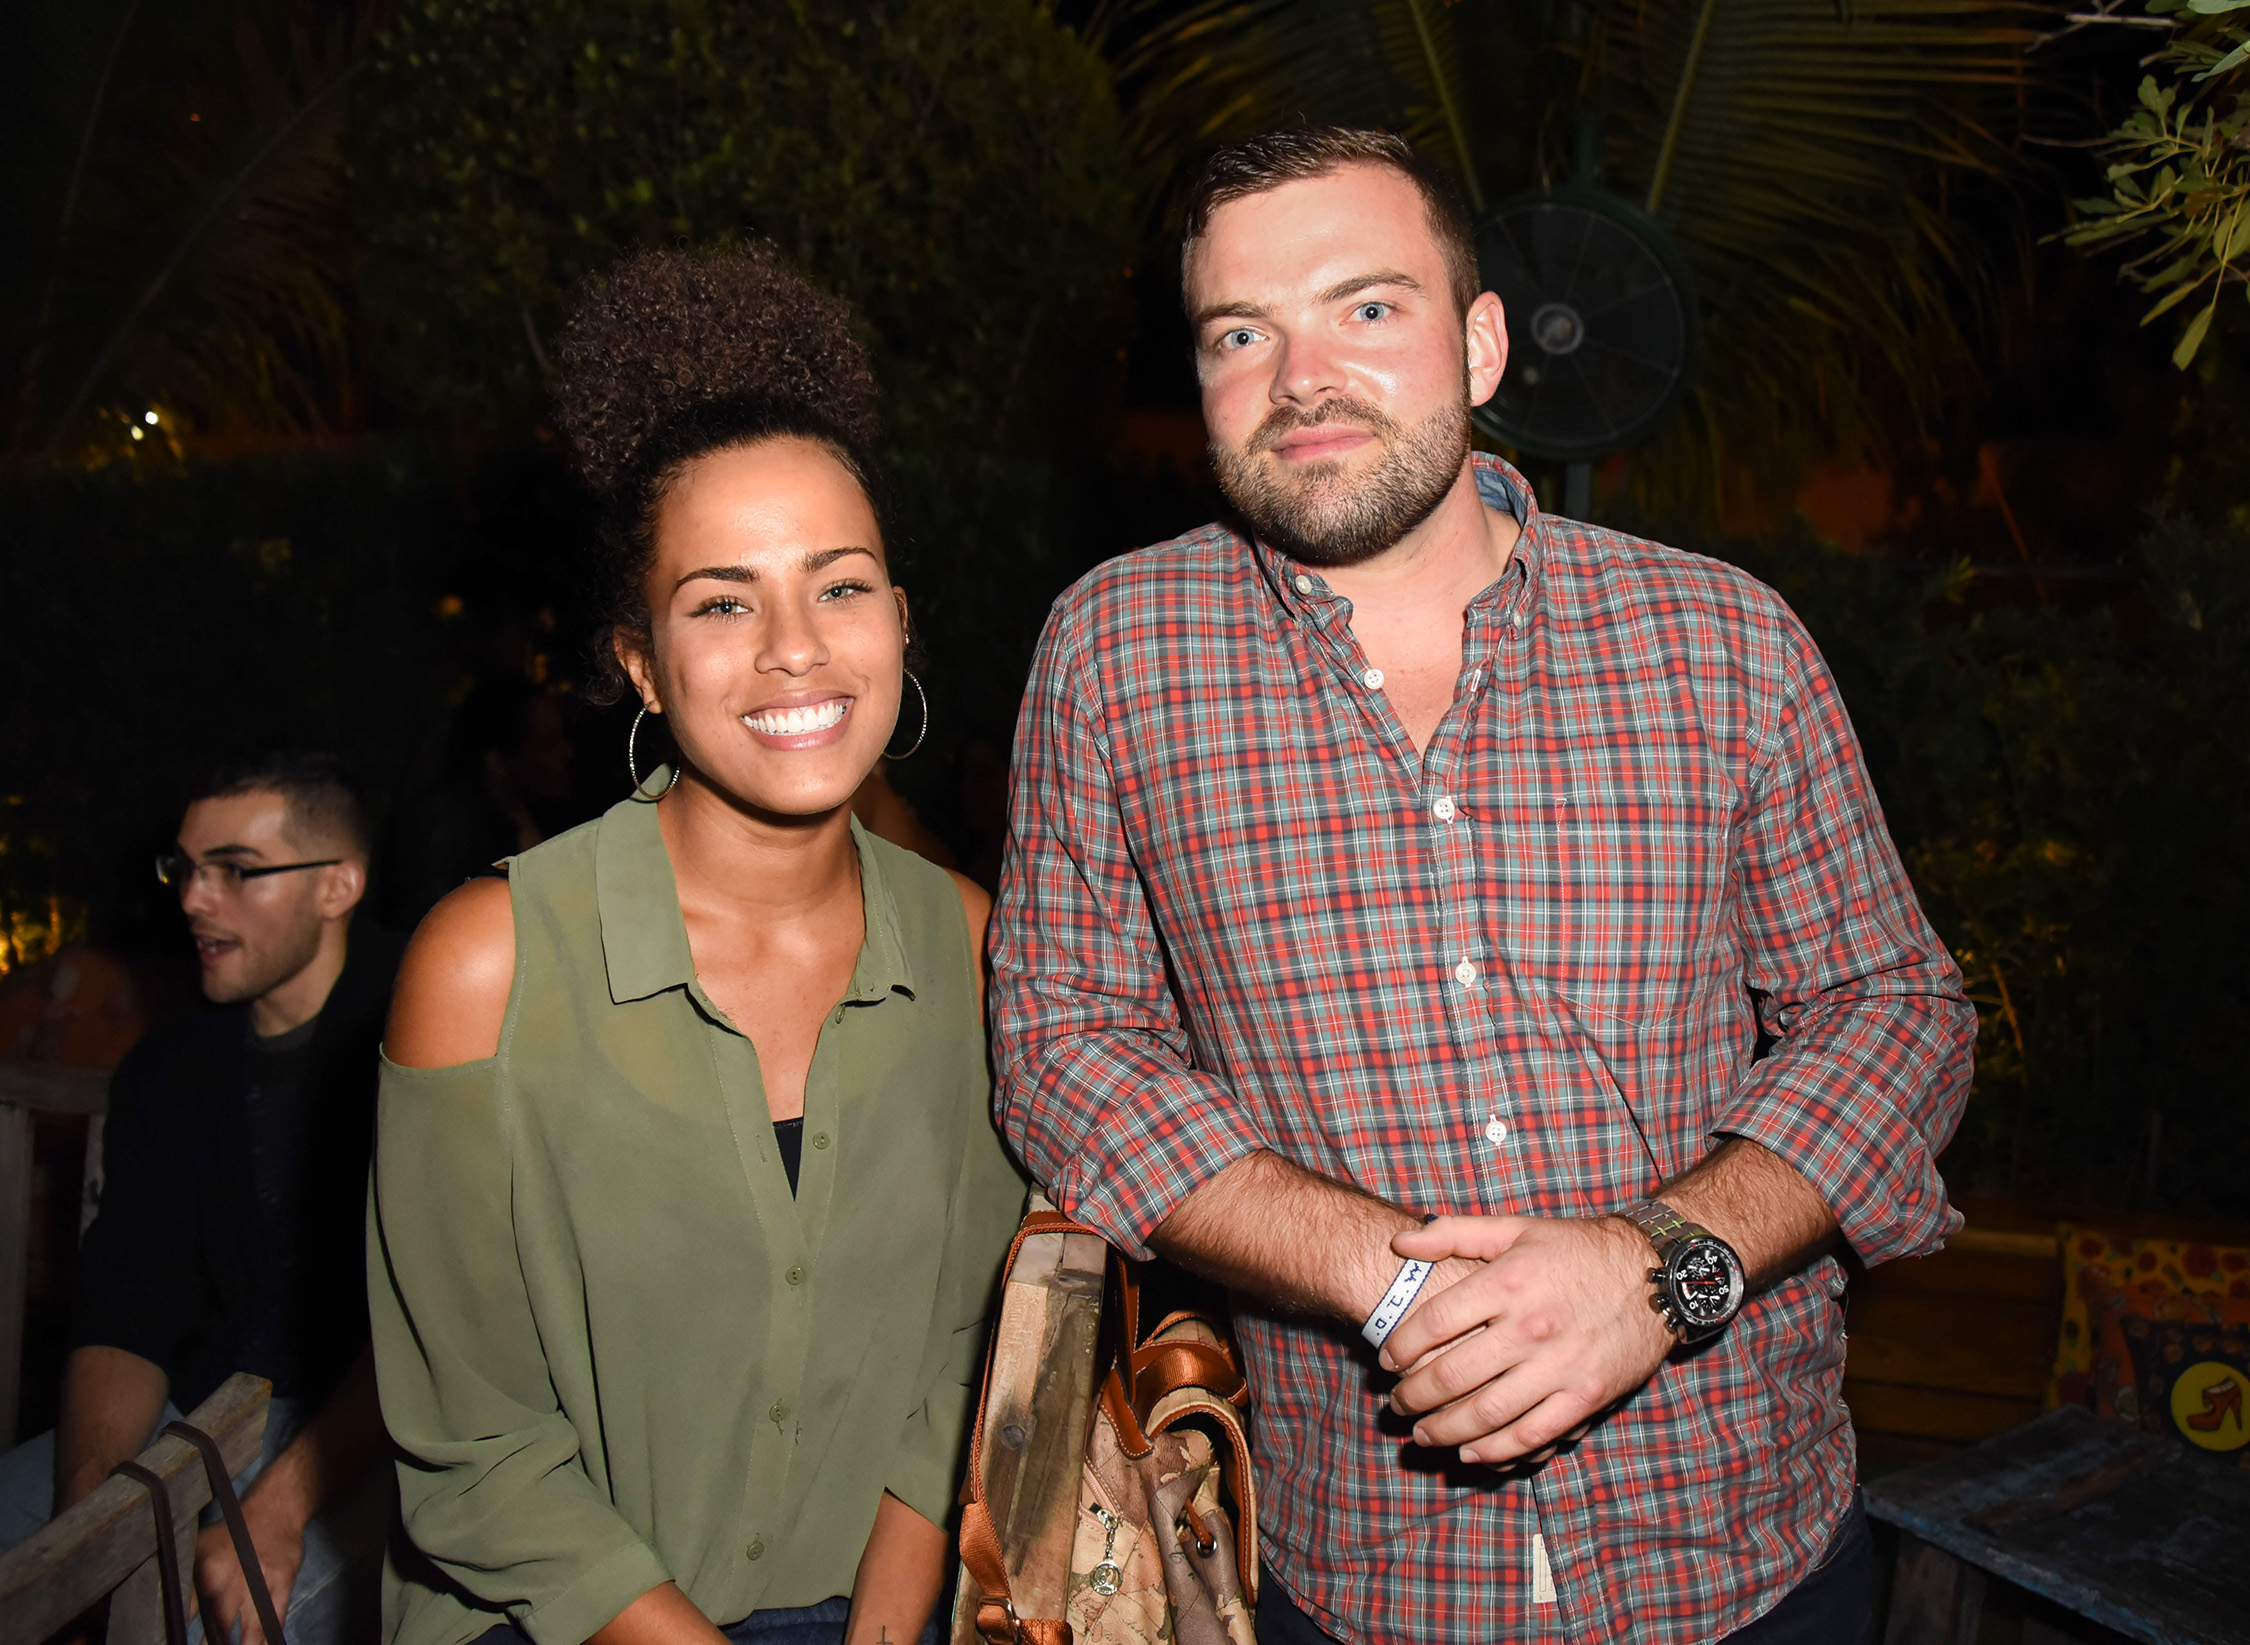 Jasmine-Douglas-and-Justin-Gibson-Around-Town-The-Seen-Fort-Lauderdale-Venice-Magazine-Michele-Eve-Sandberg